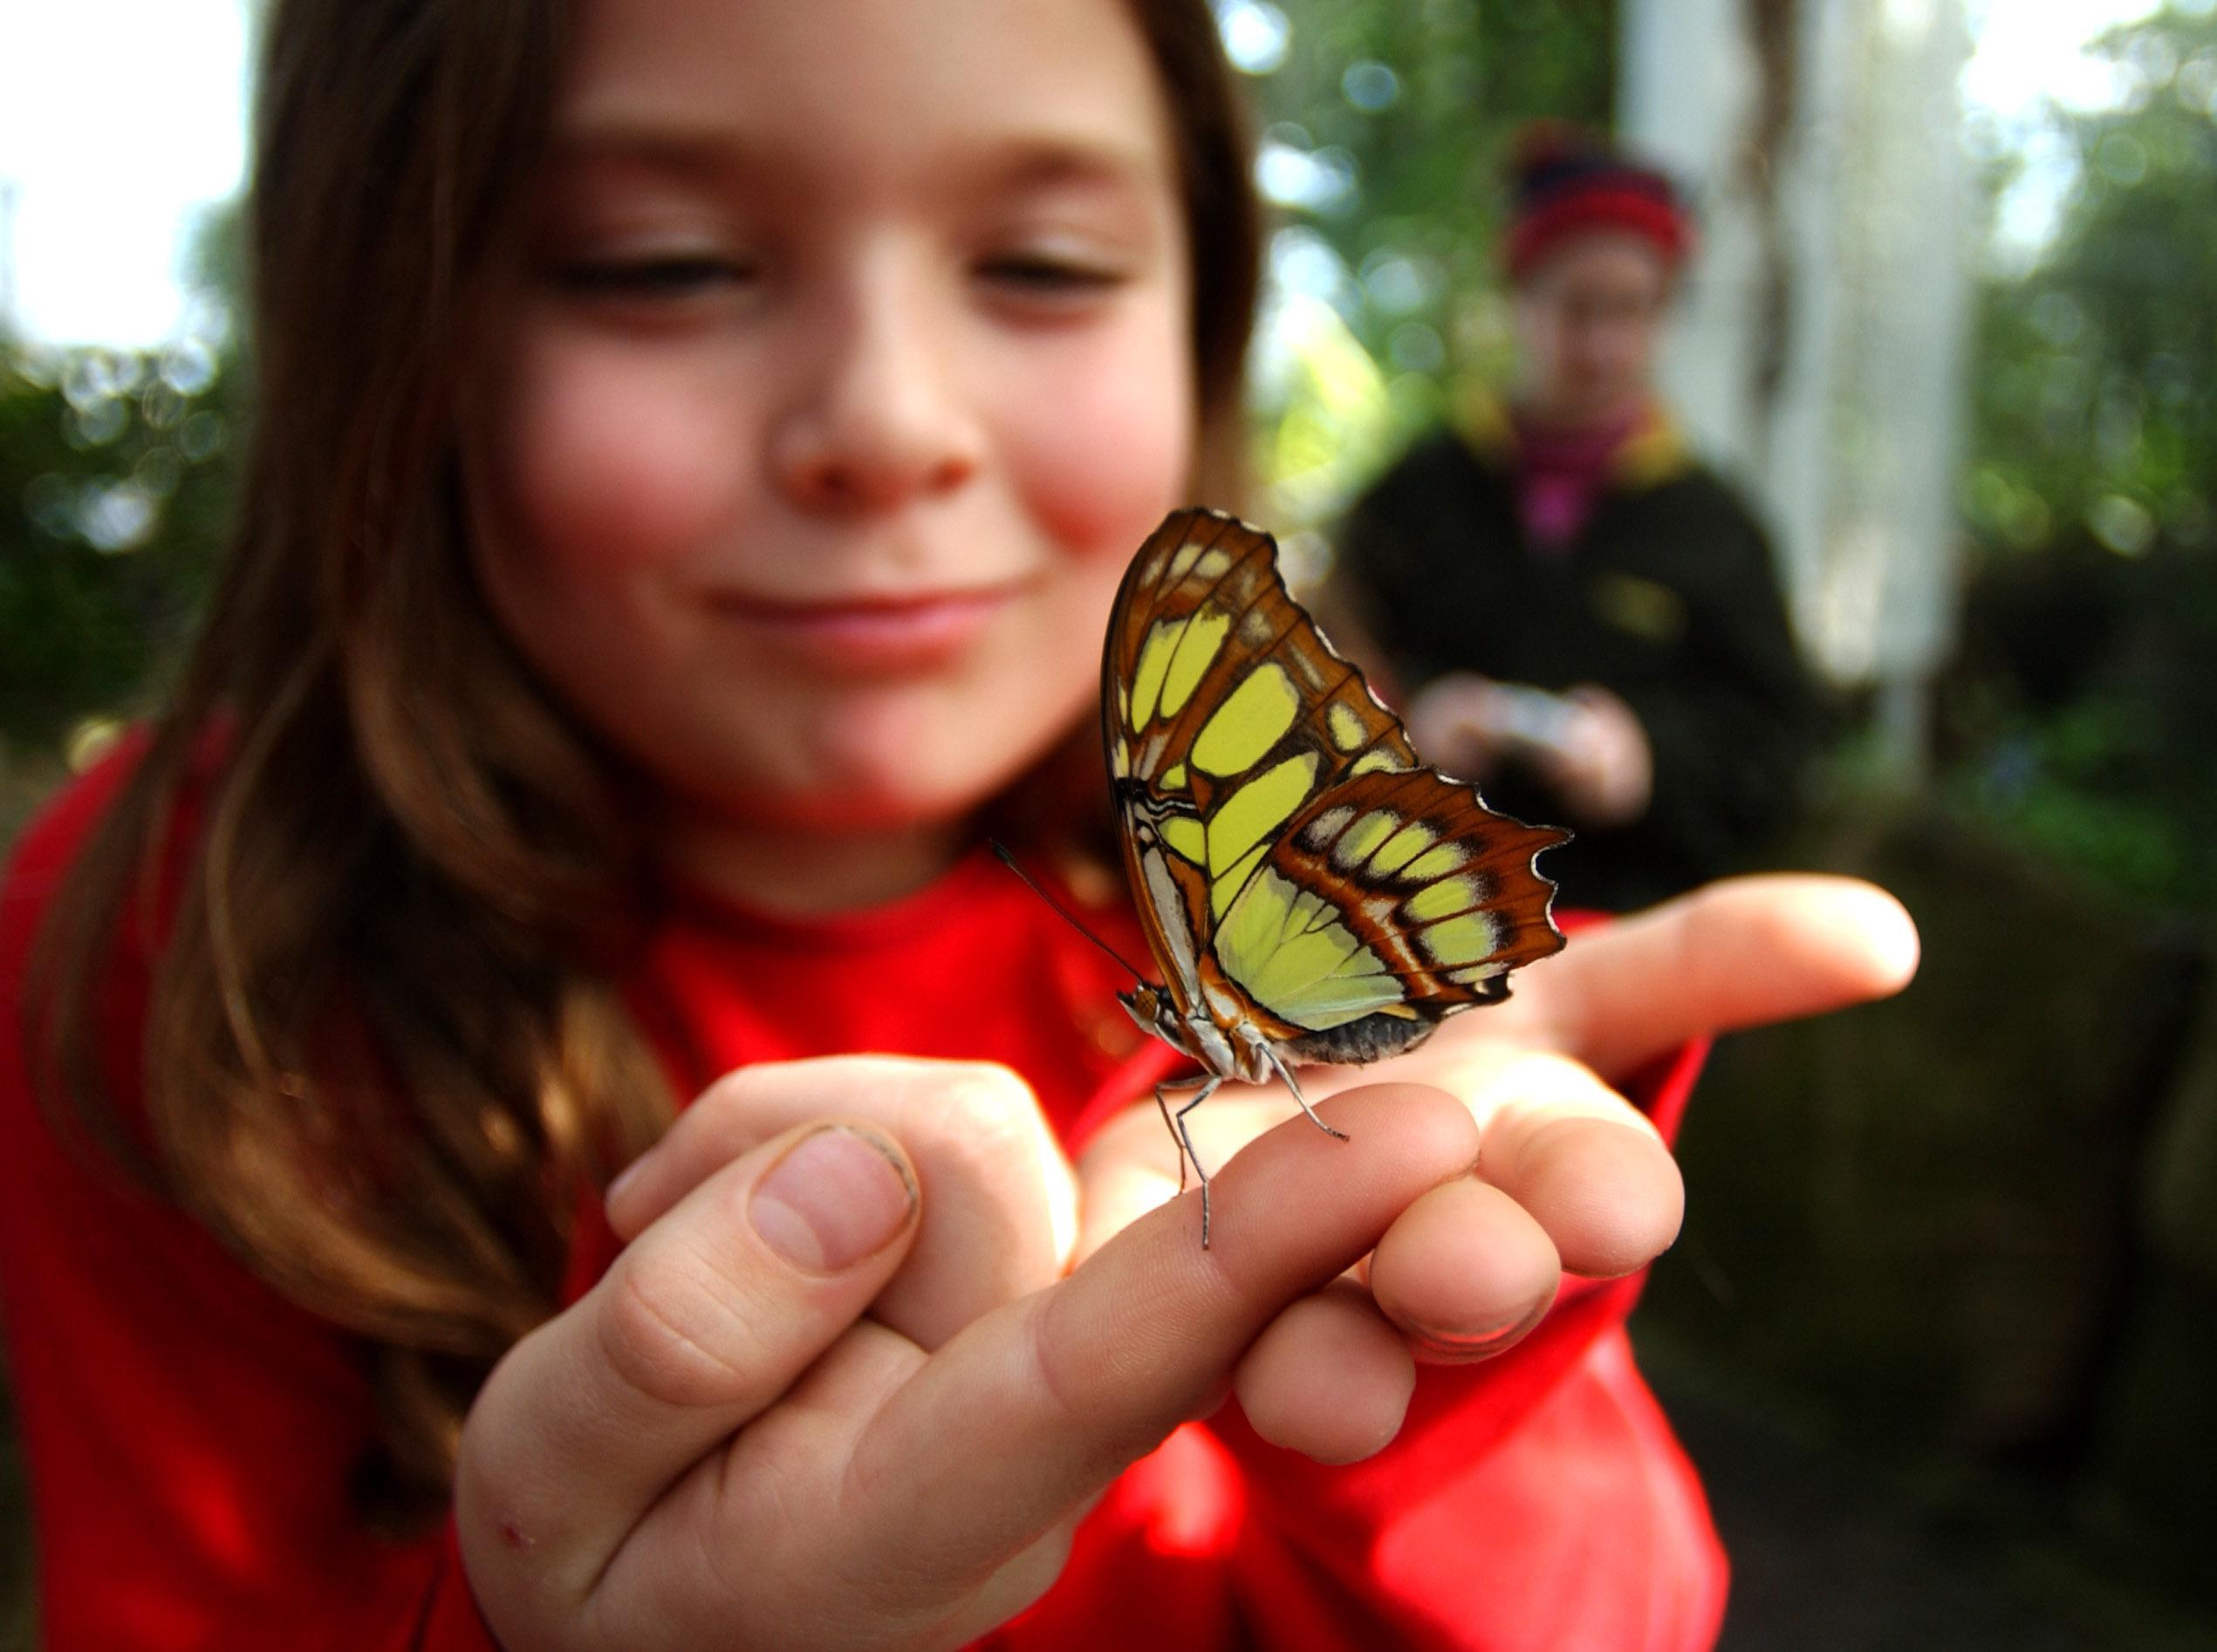 Ripley Tordoff of Buffalo holds a butterfly at the Niagara Parks Commission Butterfly Conservatory in Niagara Falls, Ont. (Robert Kirkham/Buffalo News file photo)